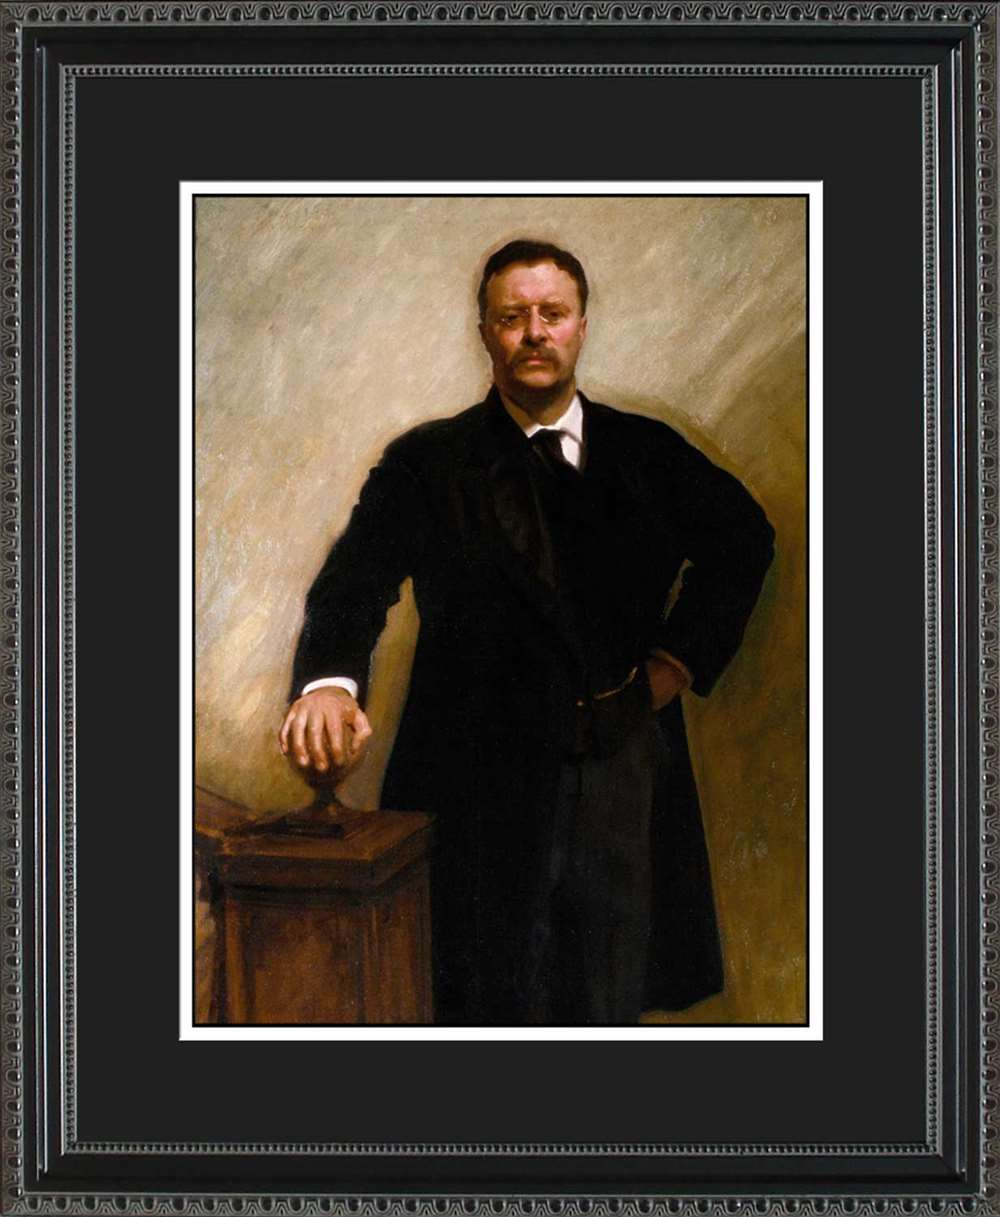 Theodore Roosevelt Official President Portrait, 16x20